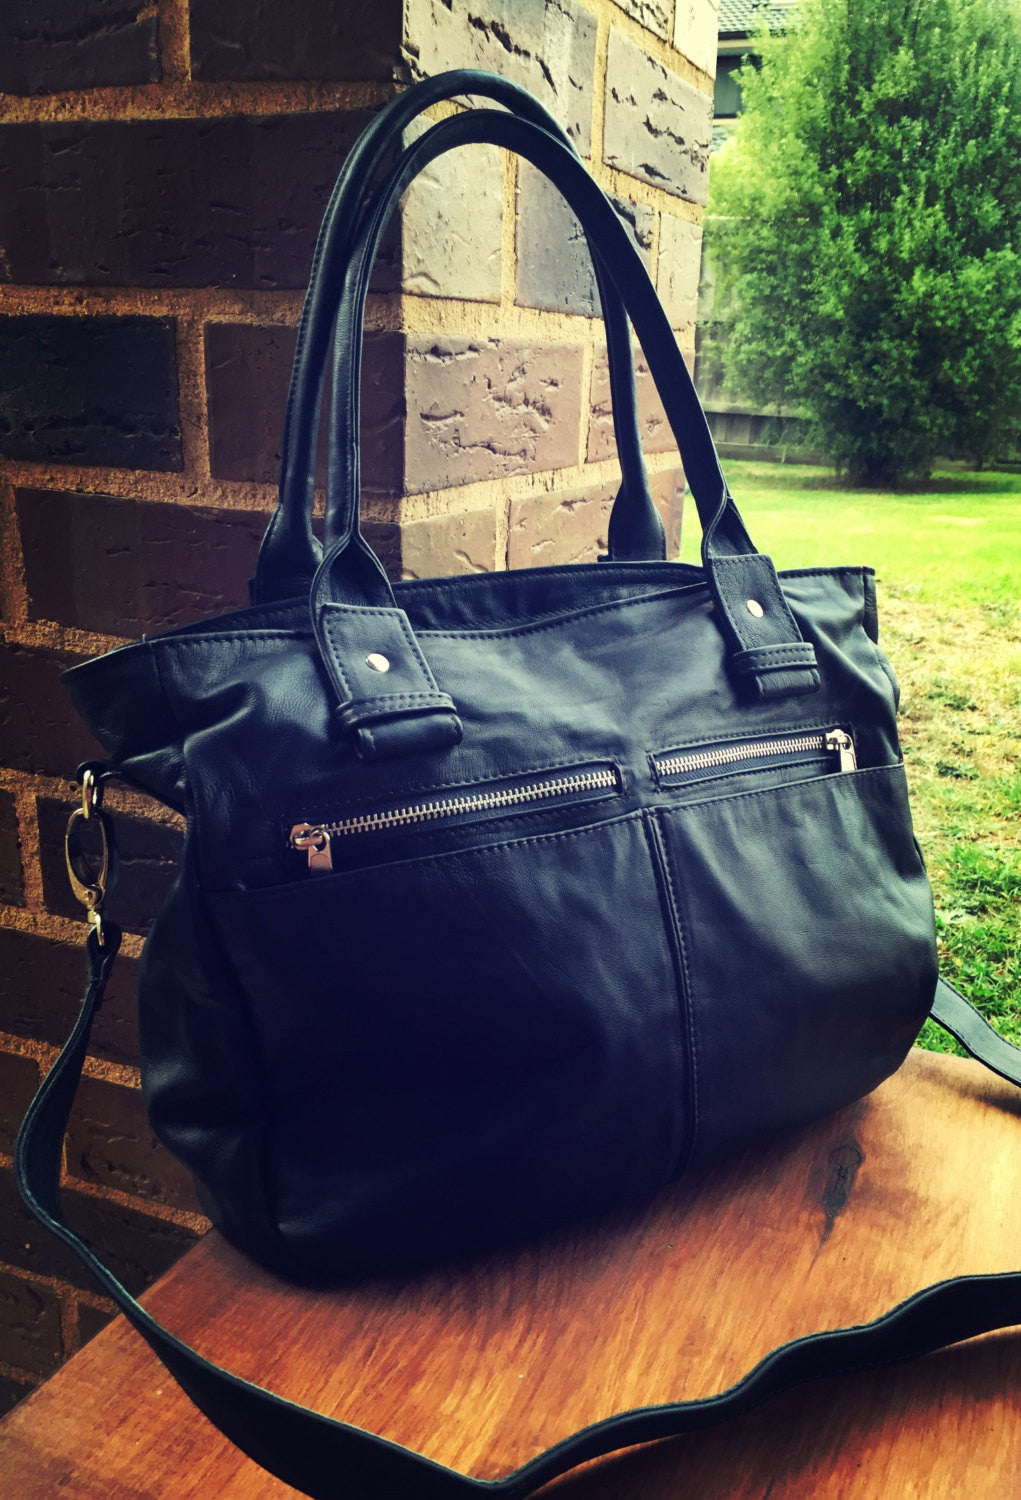 The Envoy - Everyday bag, laptop bag, shoulder bag.